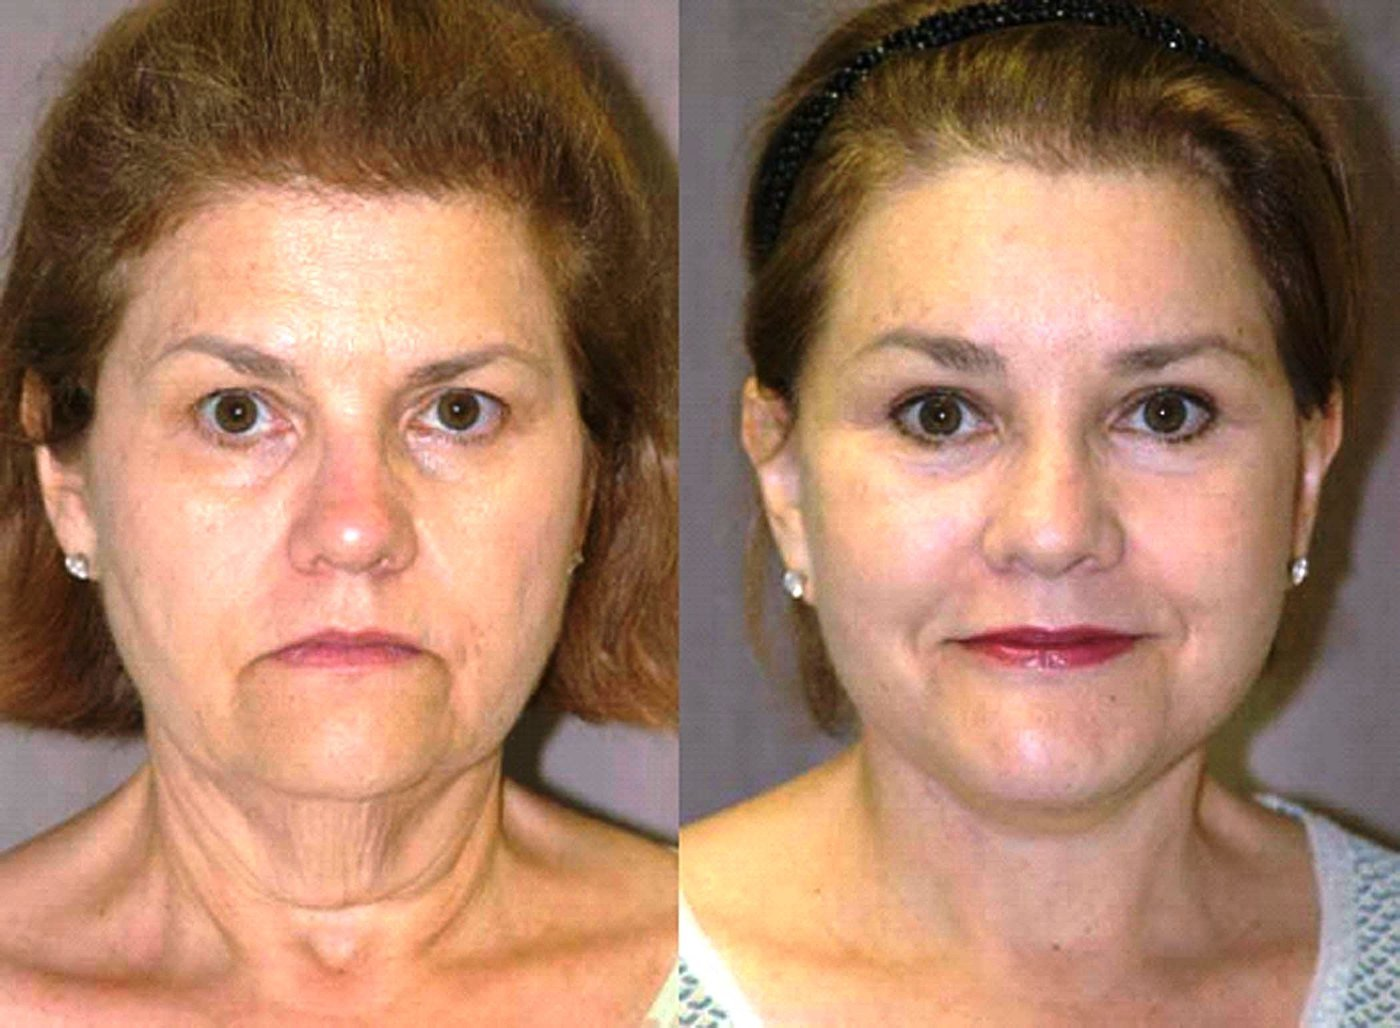 58 year old face lift brow lift eyelids and chin augmentation, 6 month follow-up front view